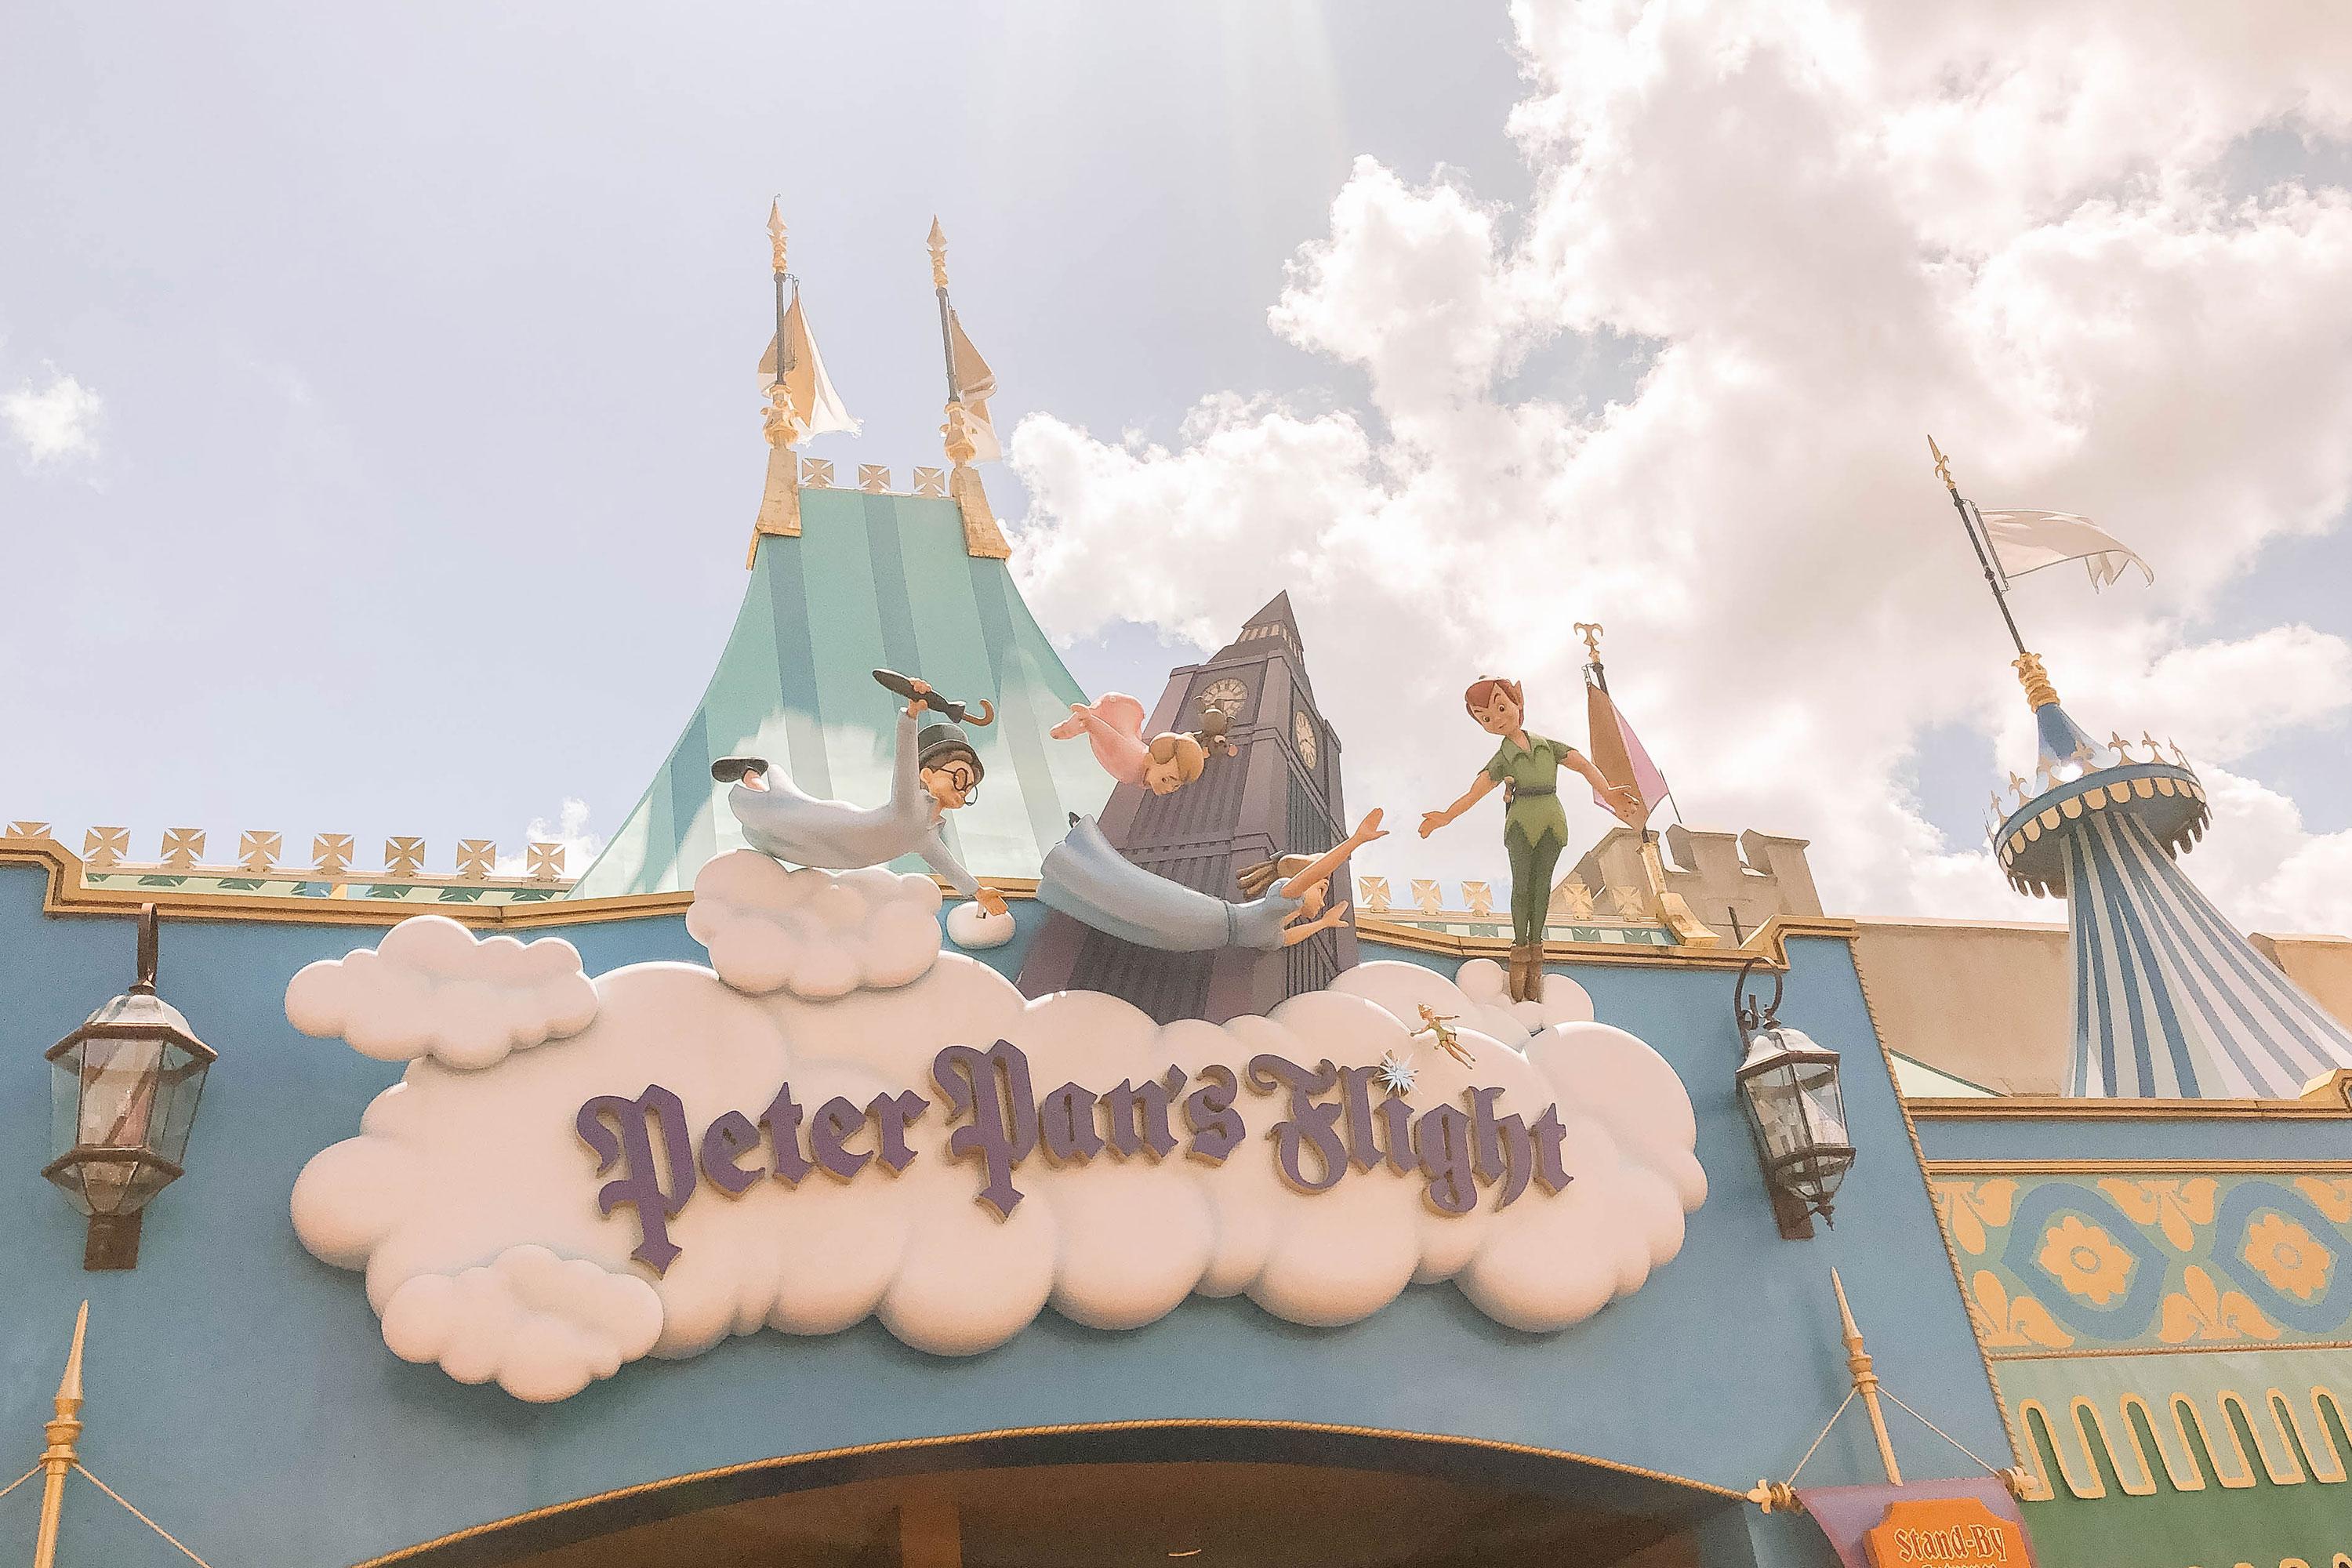 Planning a trip to Disney with young kids? Check out our ultimate guide to the best Magic Kingdom toddler rides - because having fun at WDW is possible for all ages! #disneytips